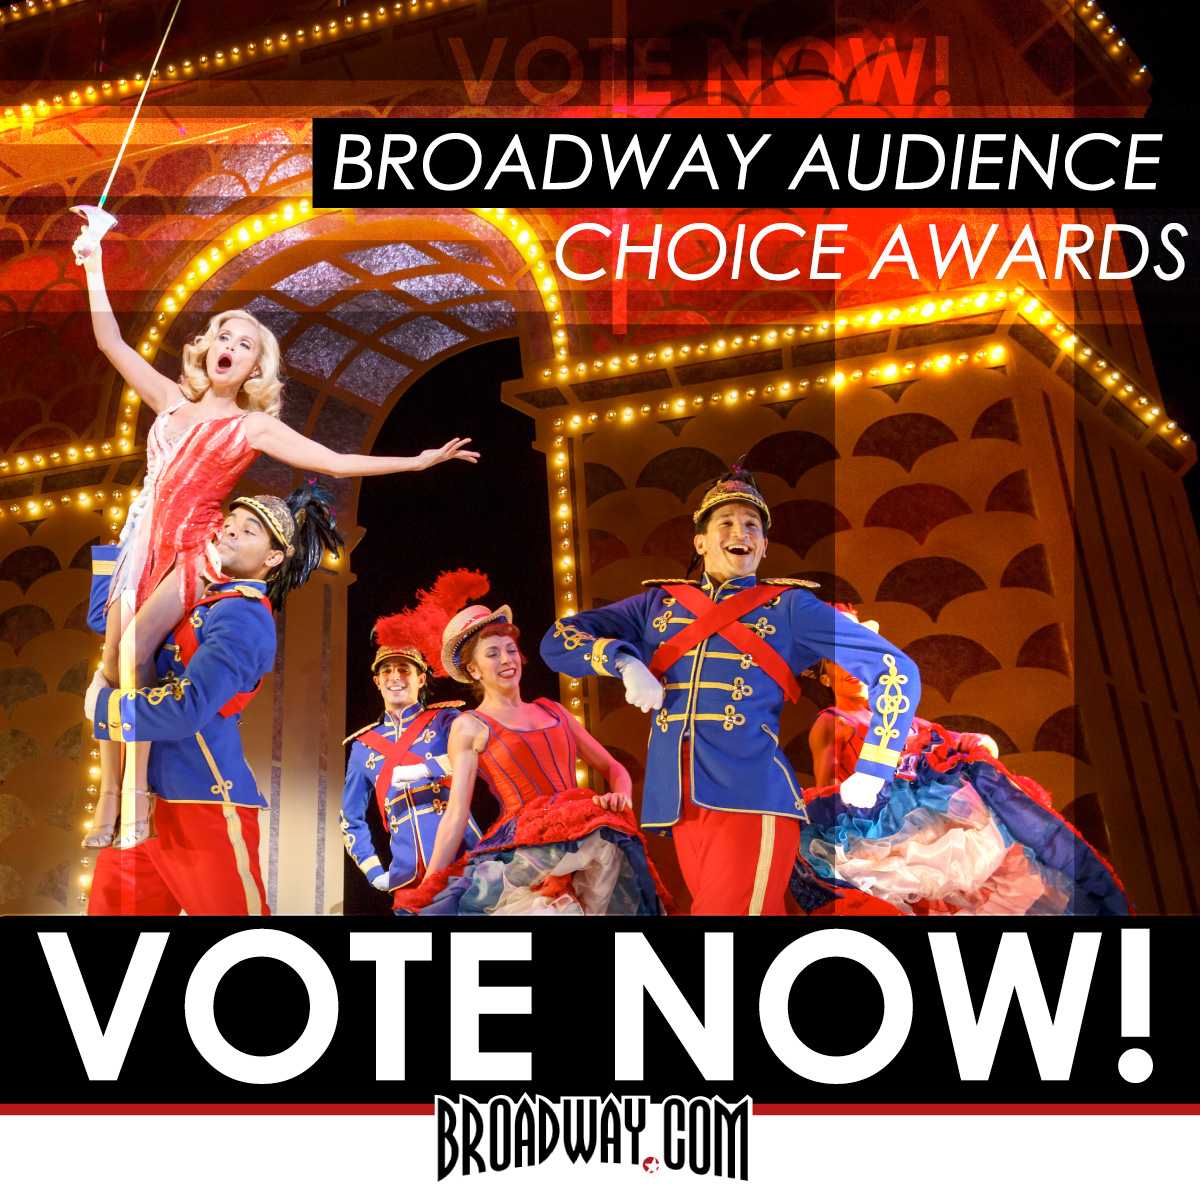 Kristin Chenoweth Nominated for Audience Choice Awards - Vote Now!